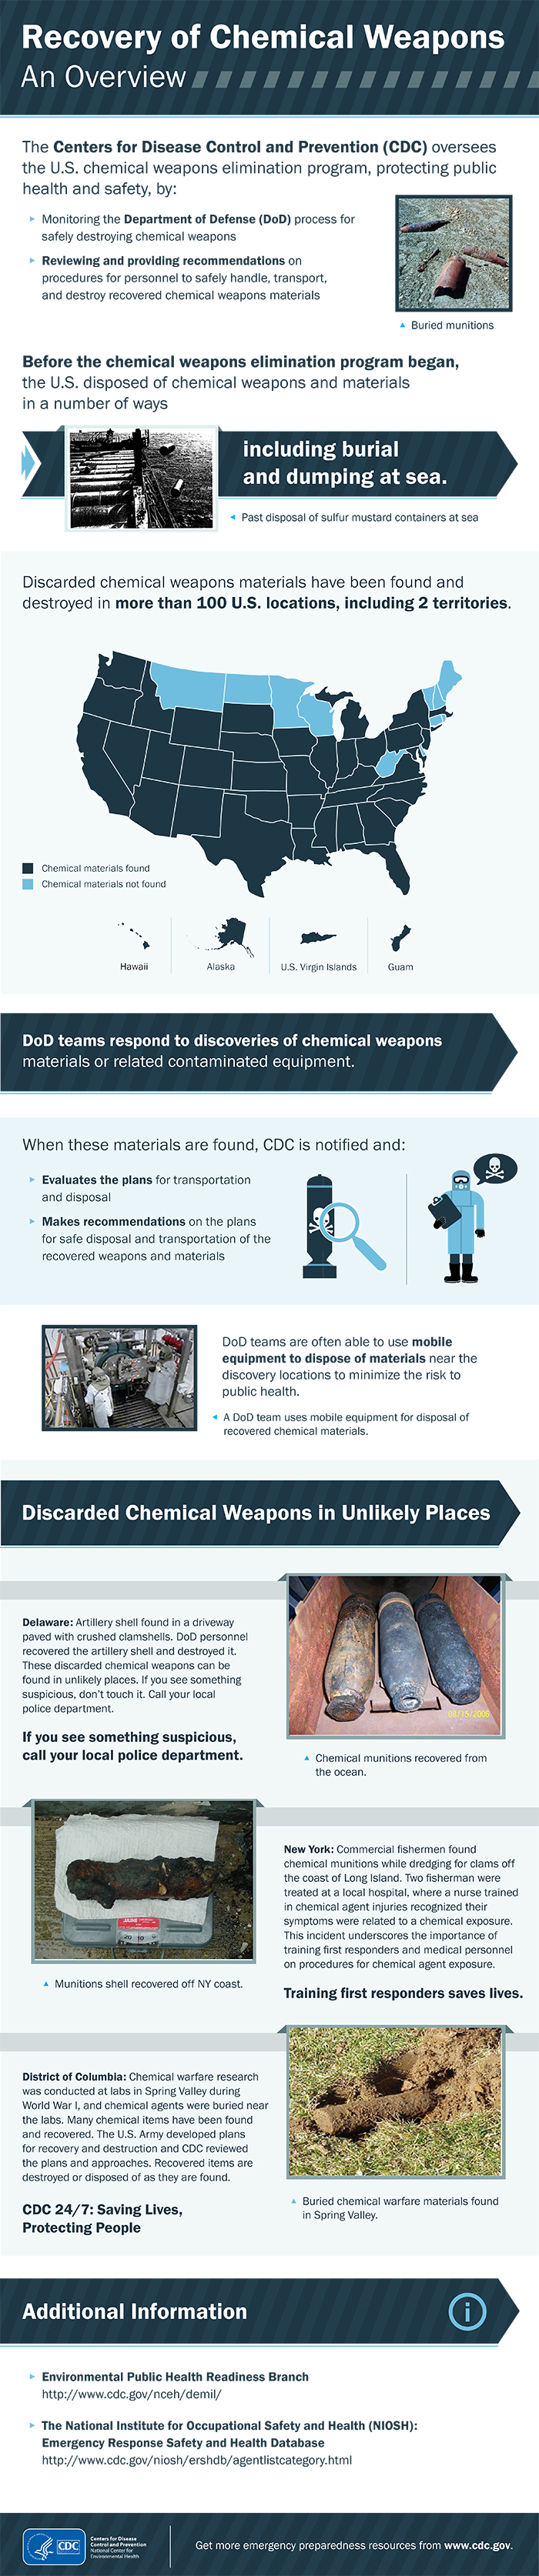 Infographic: Recovery of Chemical Weapons: An Overview